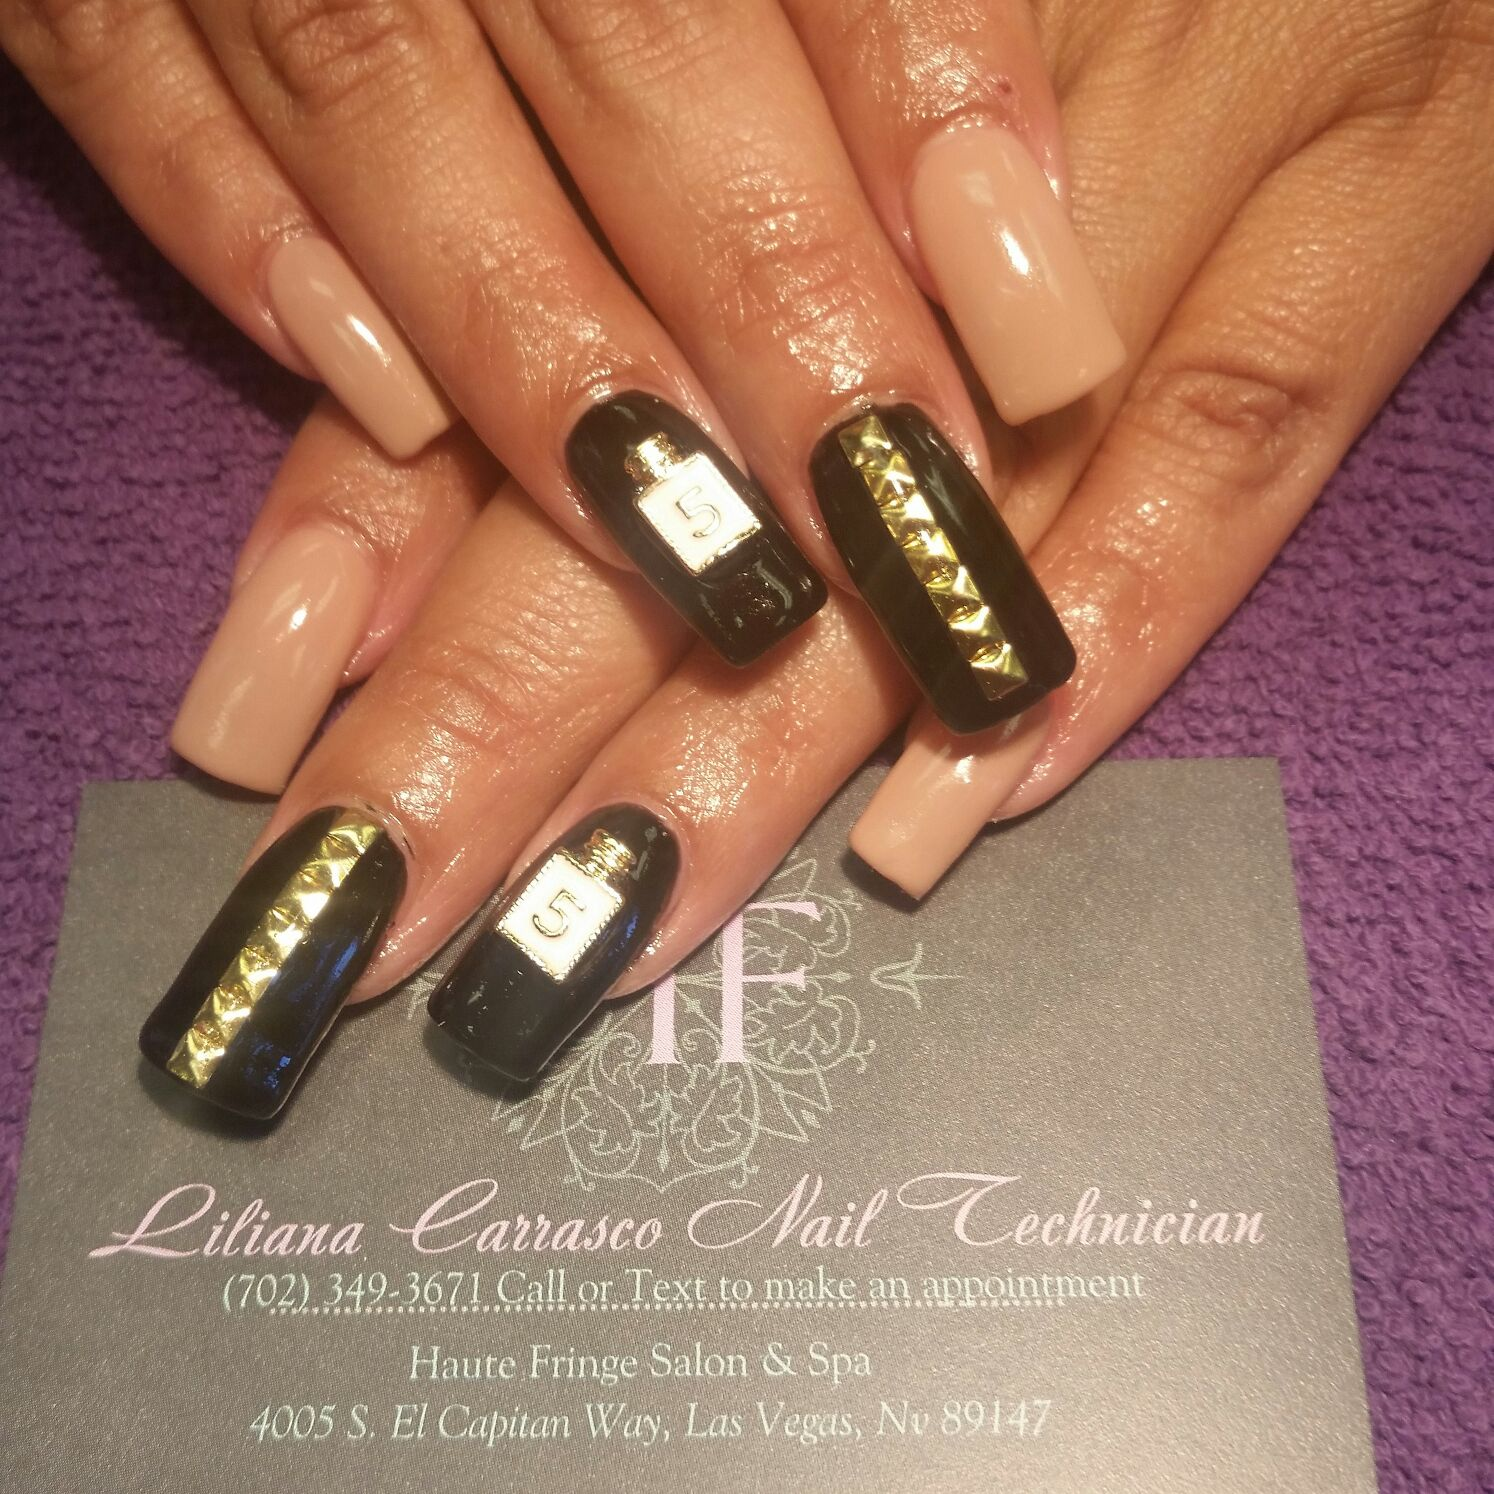 Nails By LILY39388 - Magazine cover